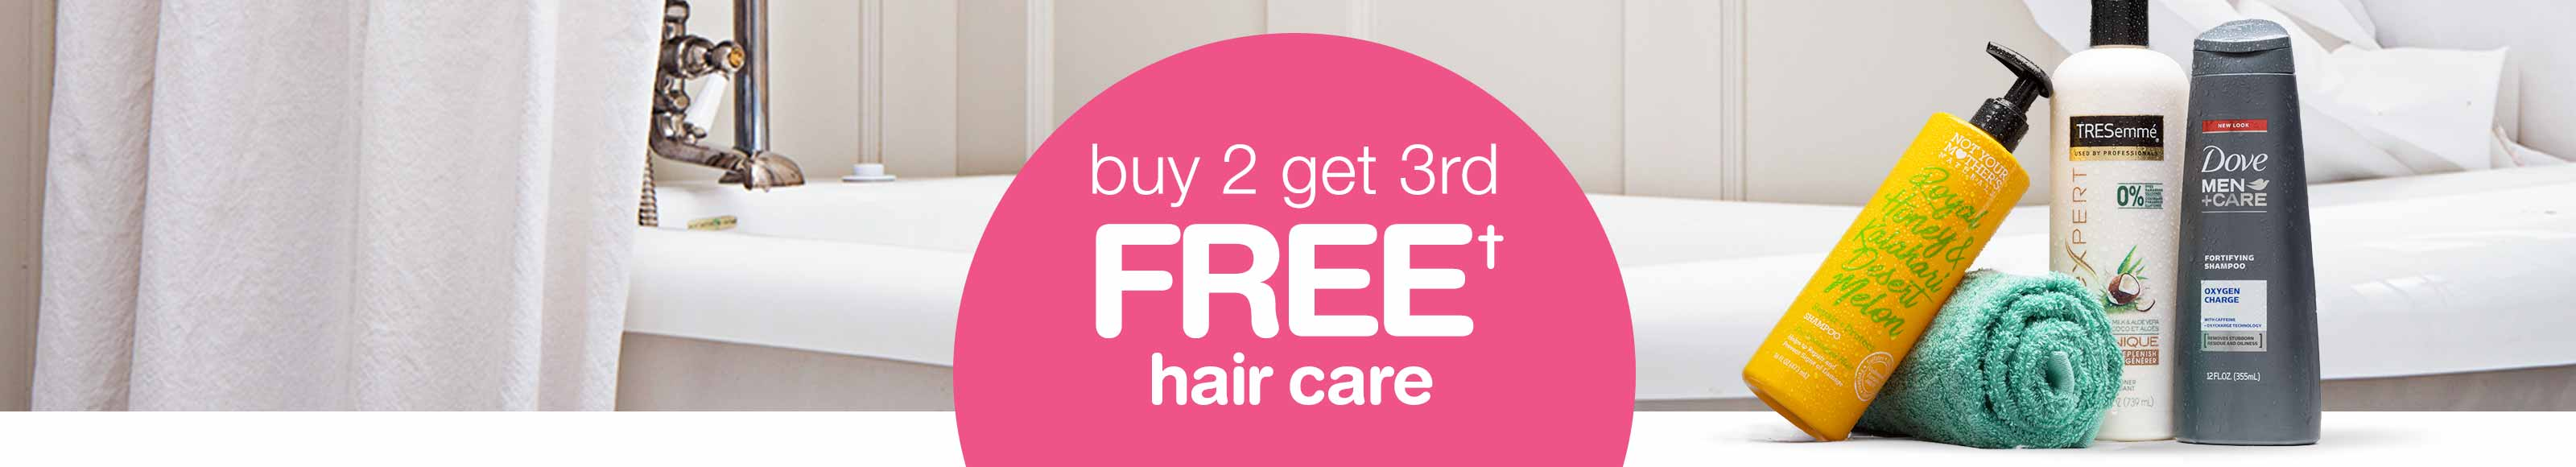 Buy 2 get 3rd FREE† hair care.